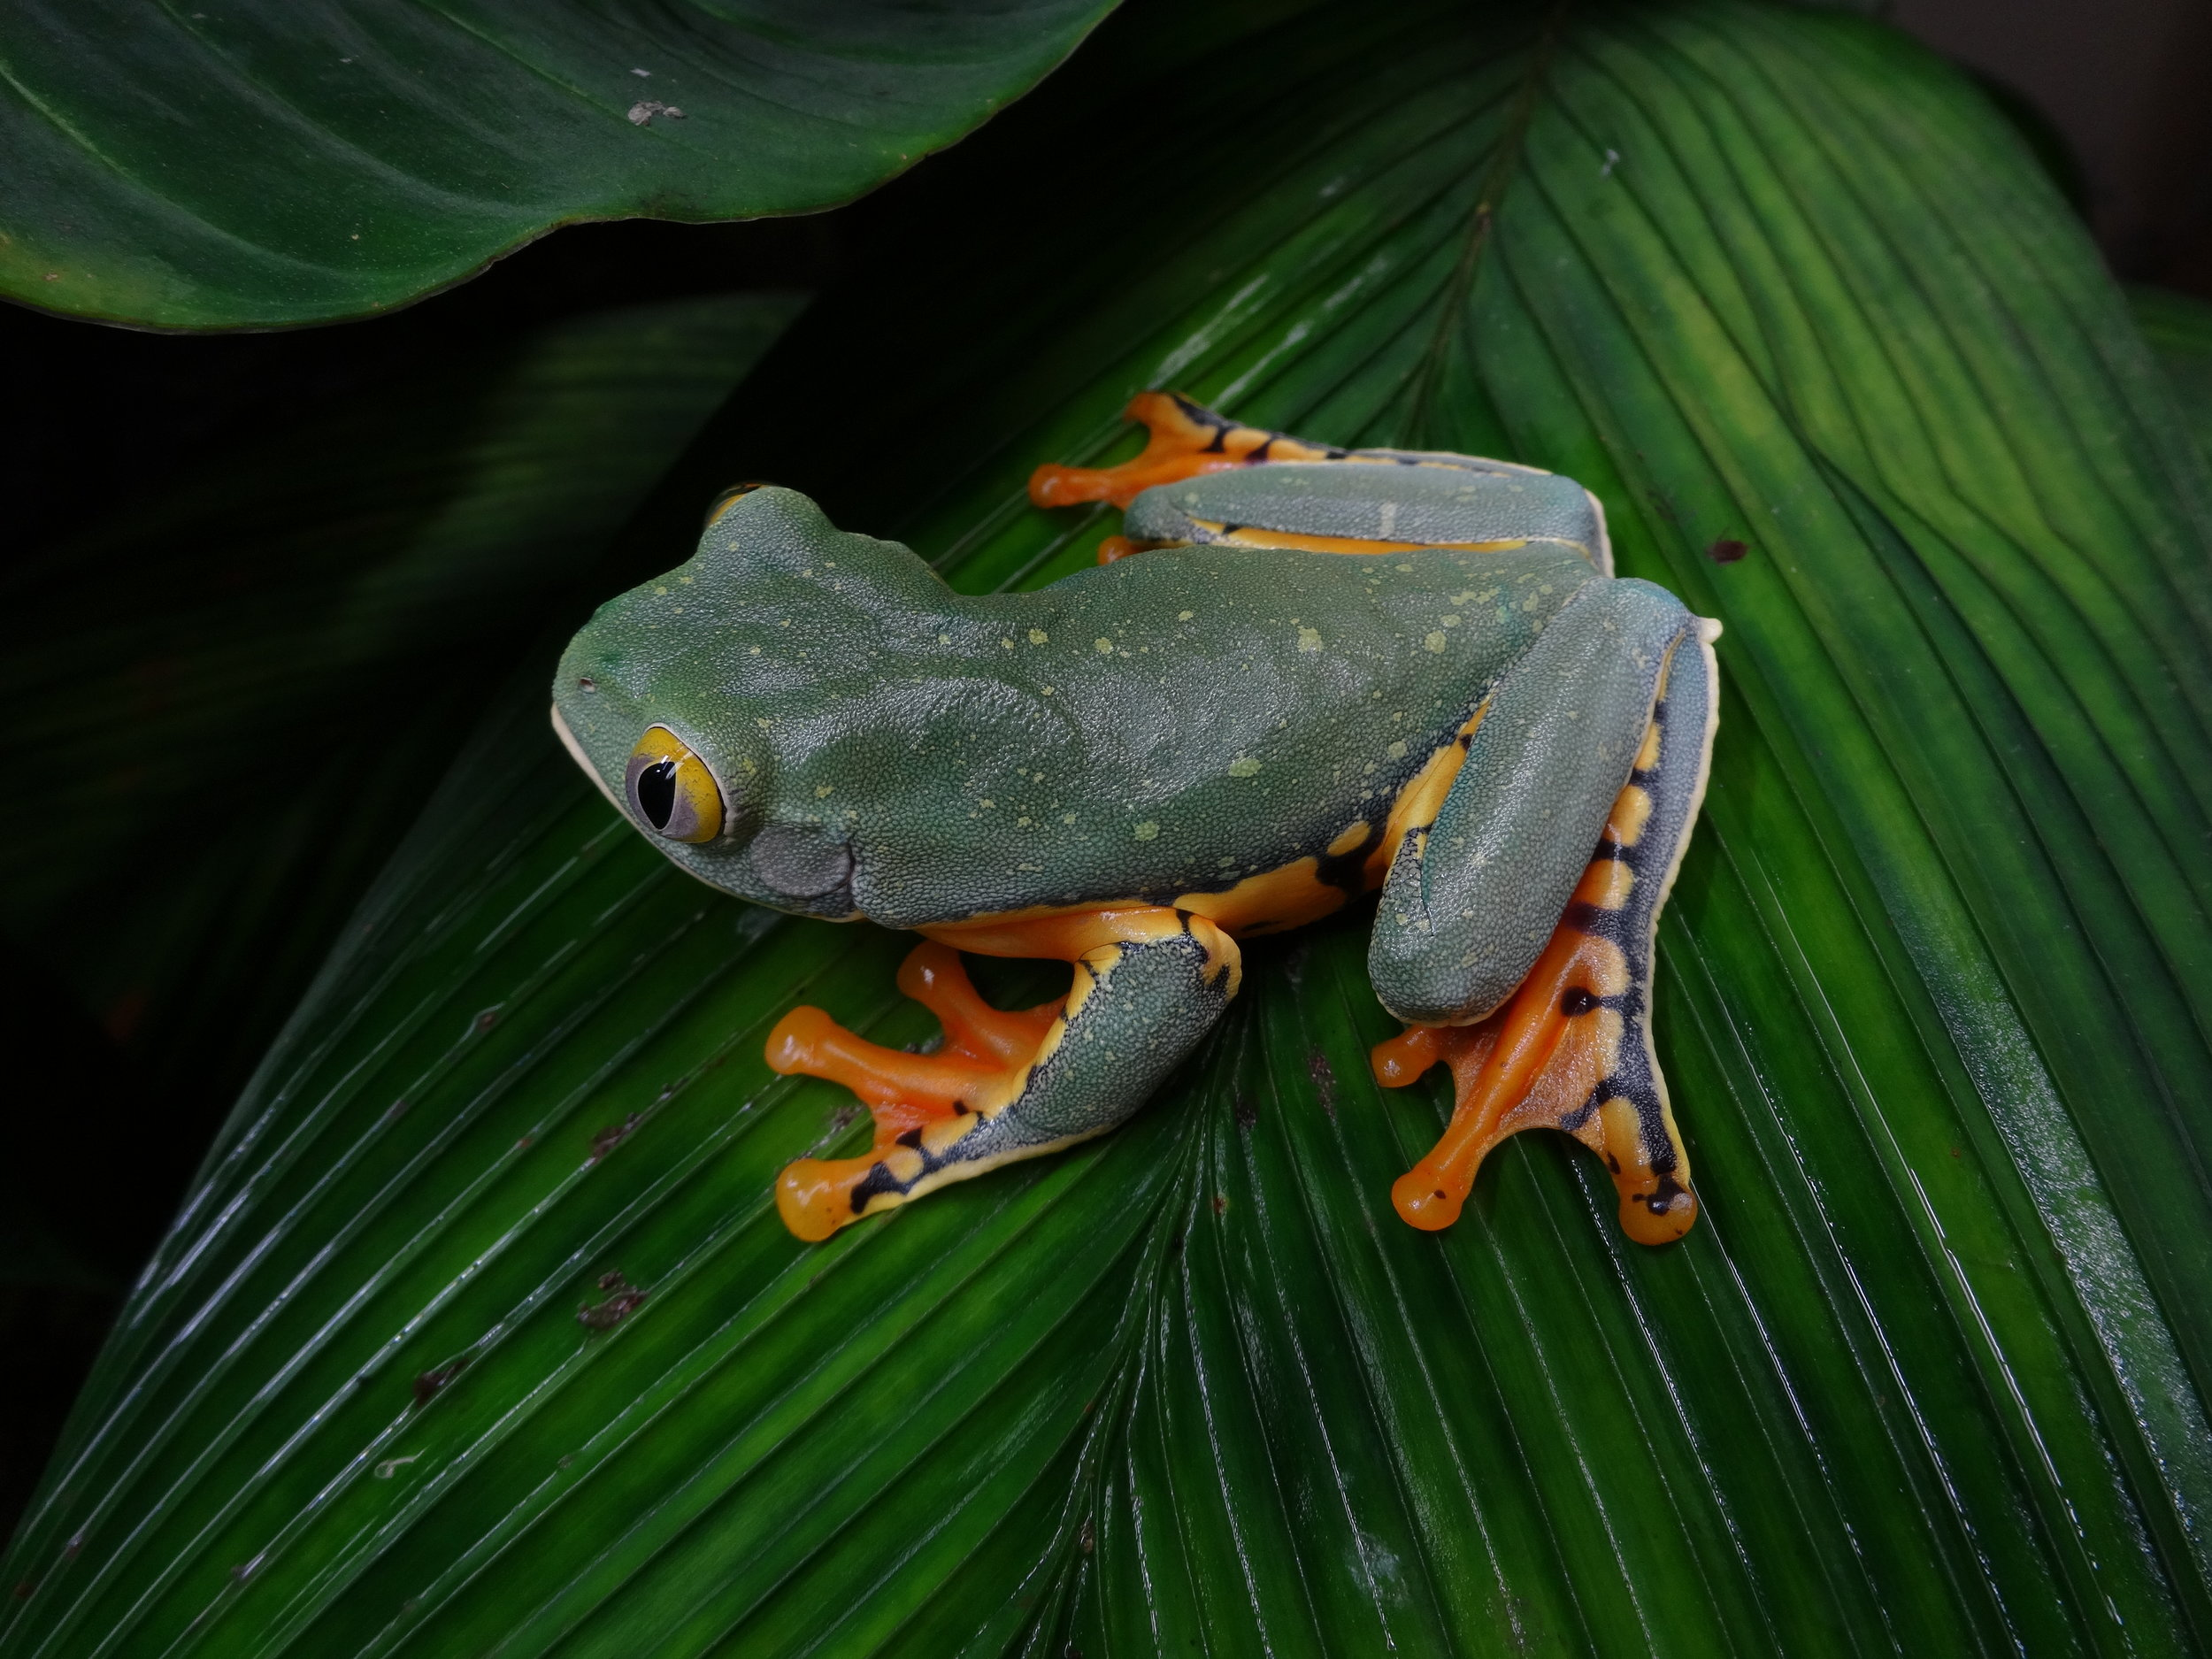 A captive adult male Costa Rican splendid leaf frog,  Cruziohyla sylviae , on a mature frond of a vivarium-grown stained glass palm,  Geonoma epetiolata